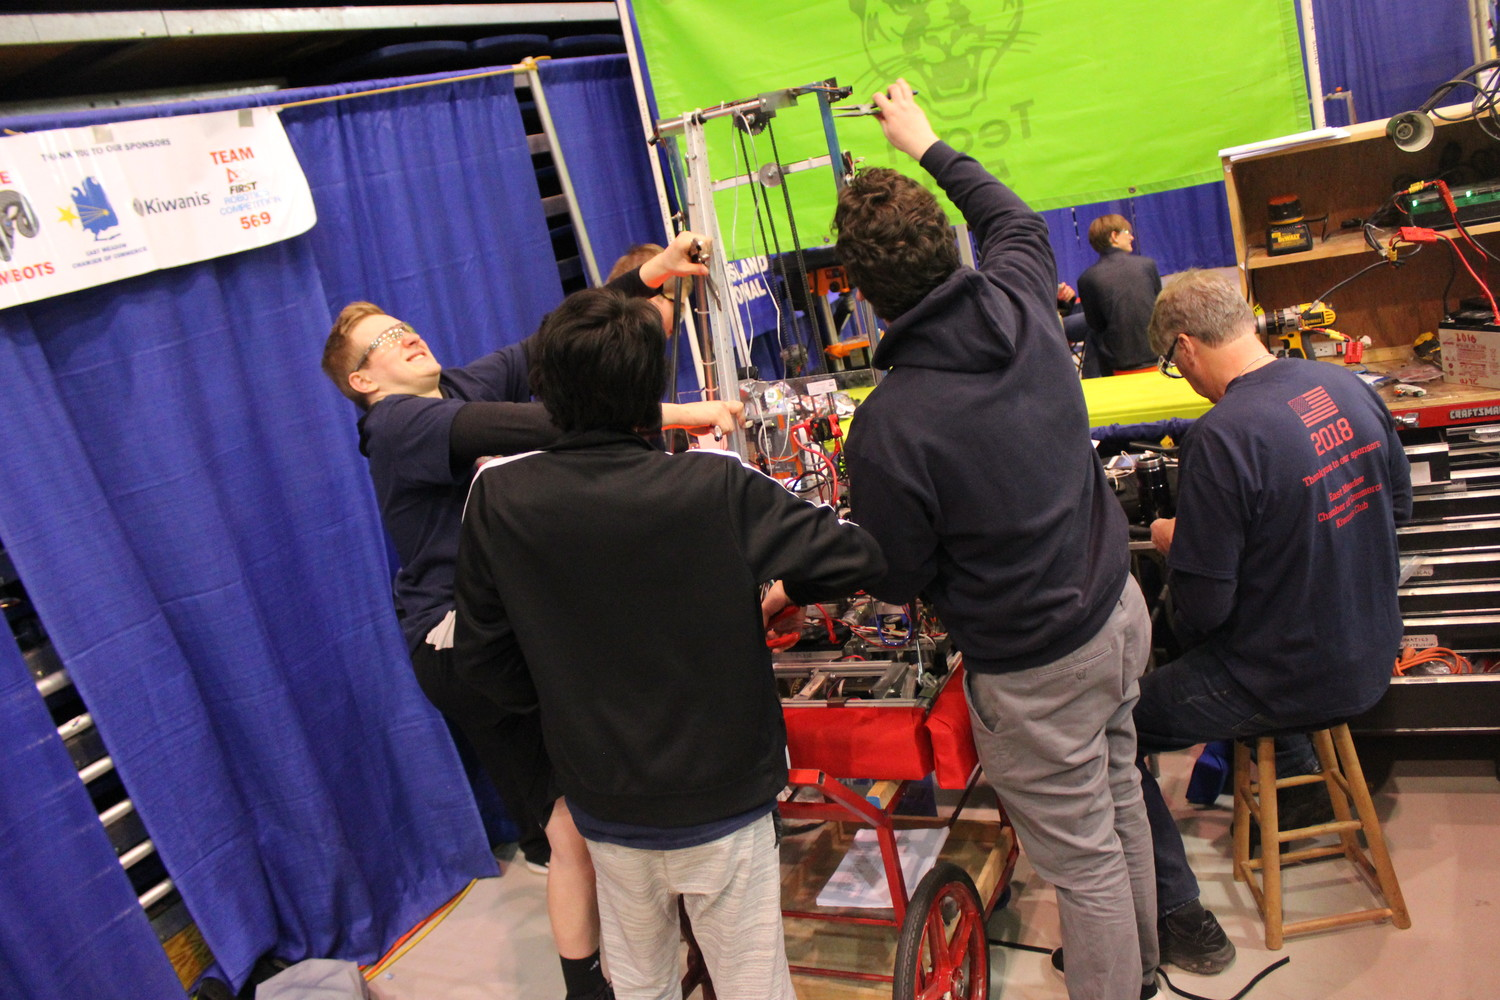 Students spend six weeks constructing their robots prior to the competition and, in between rounds, must repair them and get ready for the next game to begin.